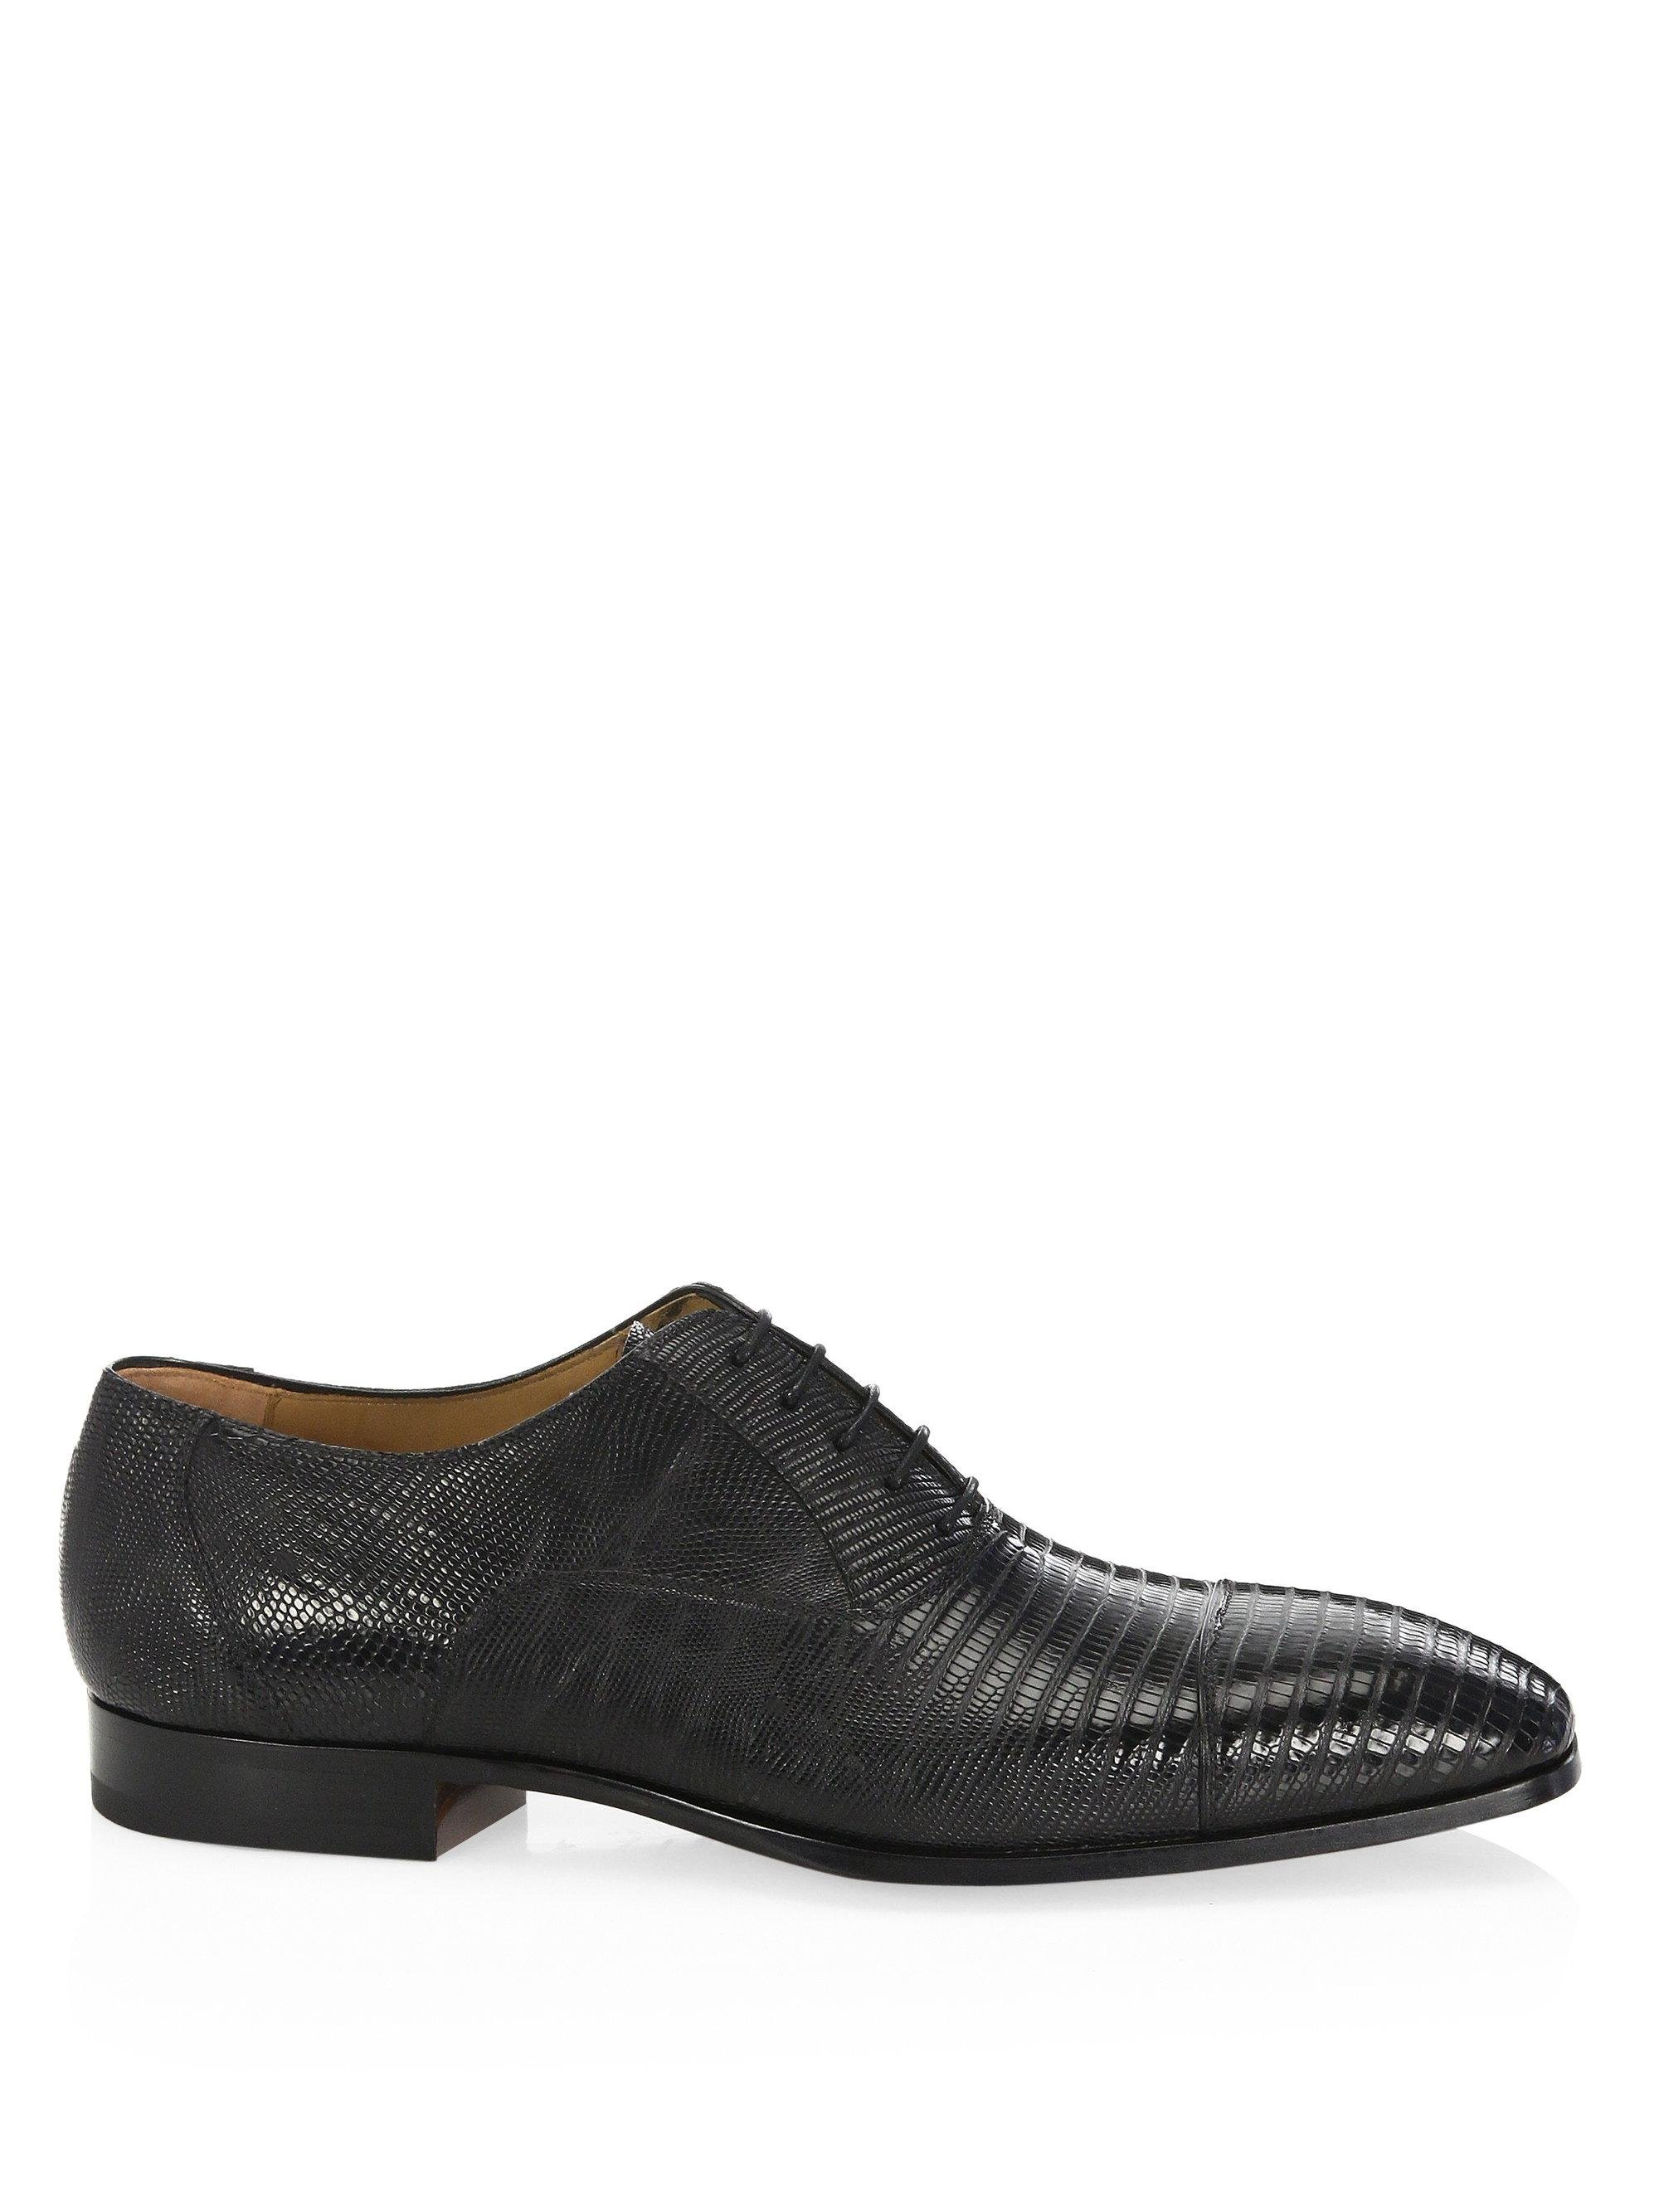 Saks Fifth AvenueCOLLECTION BY MAGNANNI Laser-Cut Leather Oxfords nBa7du